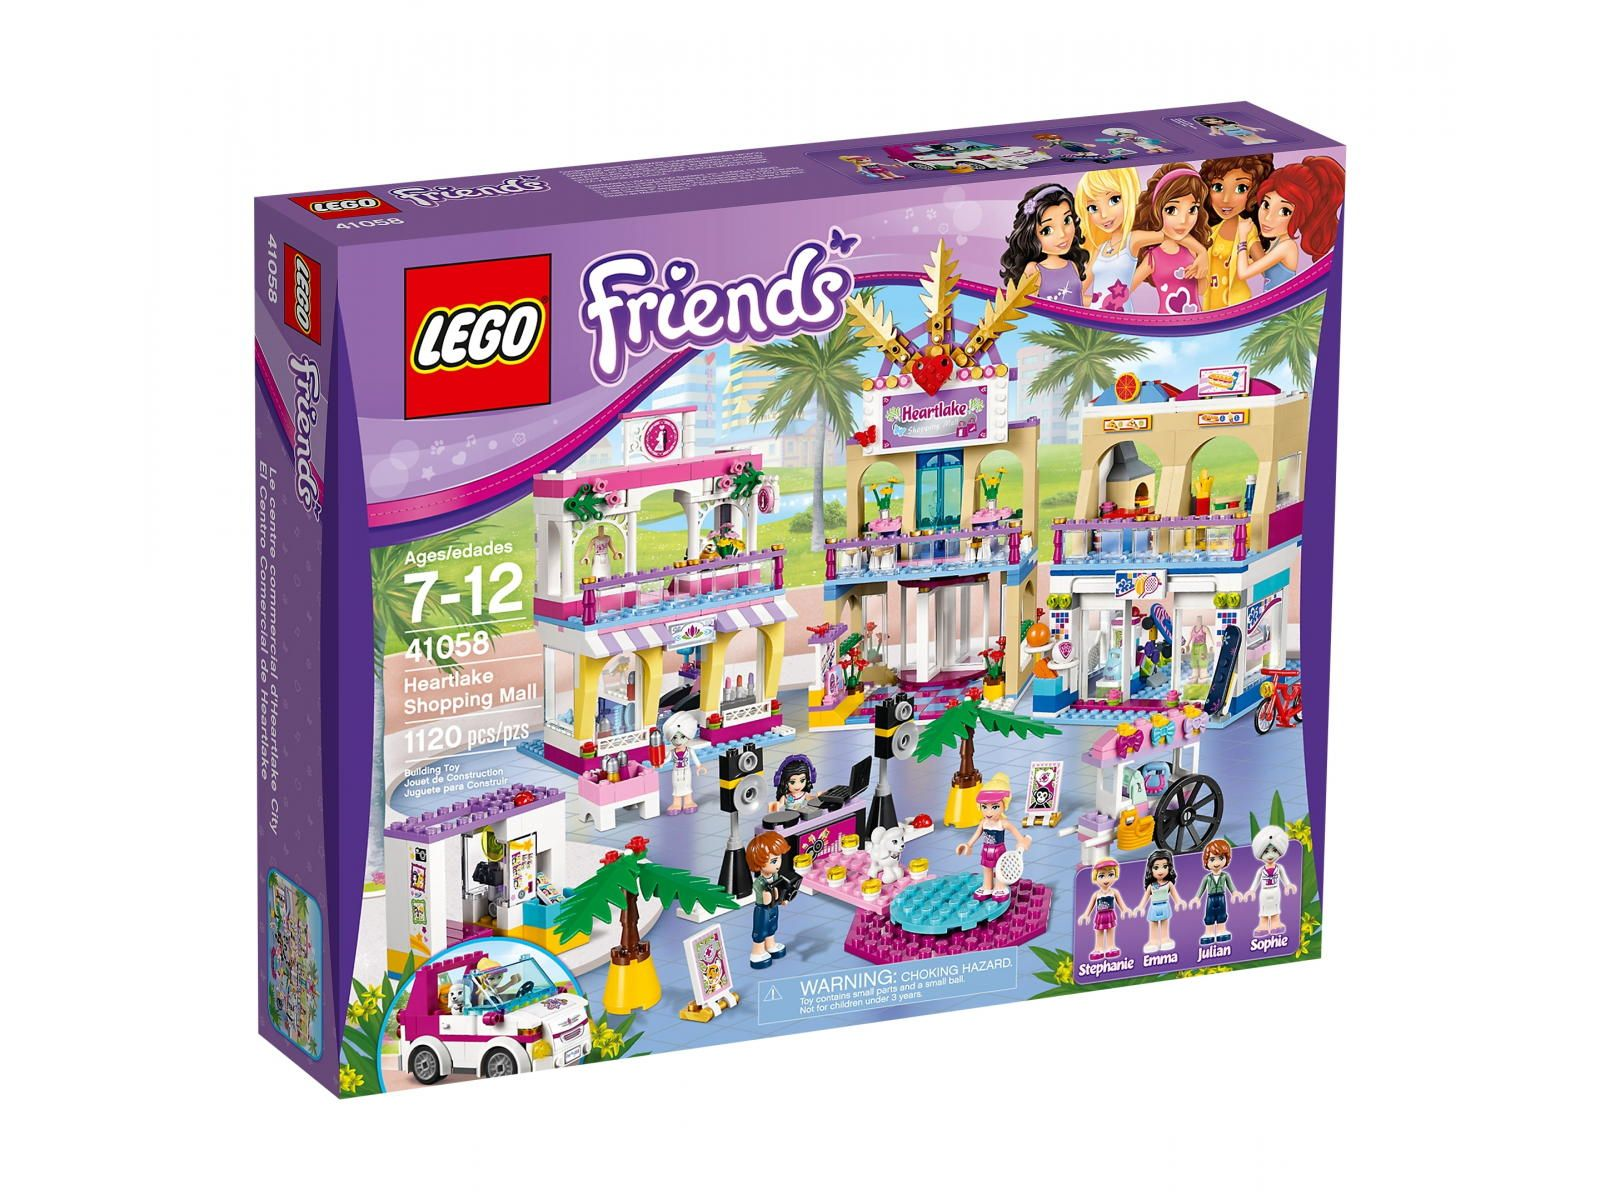 LEGO Friends 41058 Centrum Handlowe